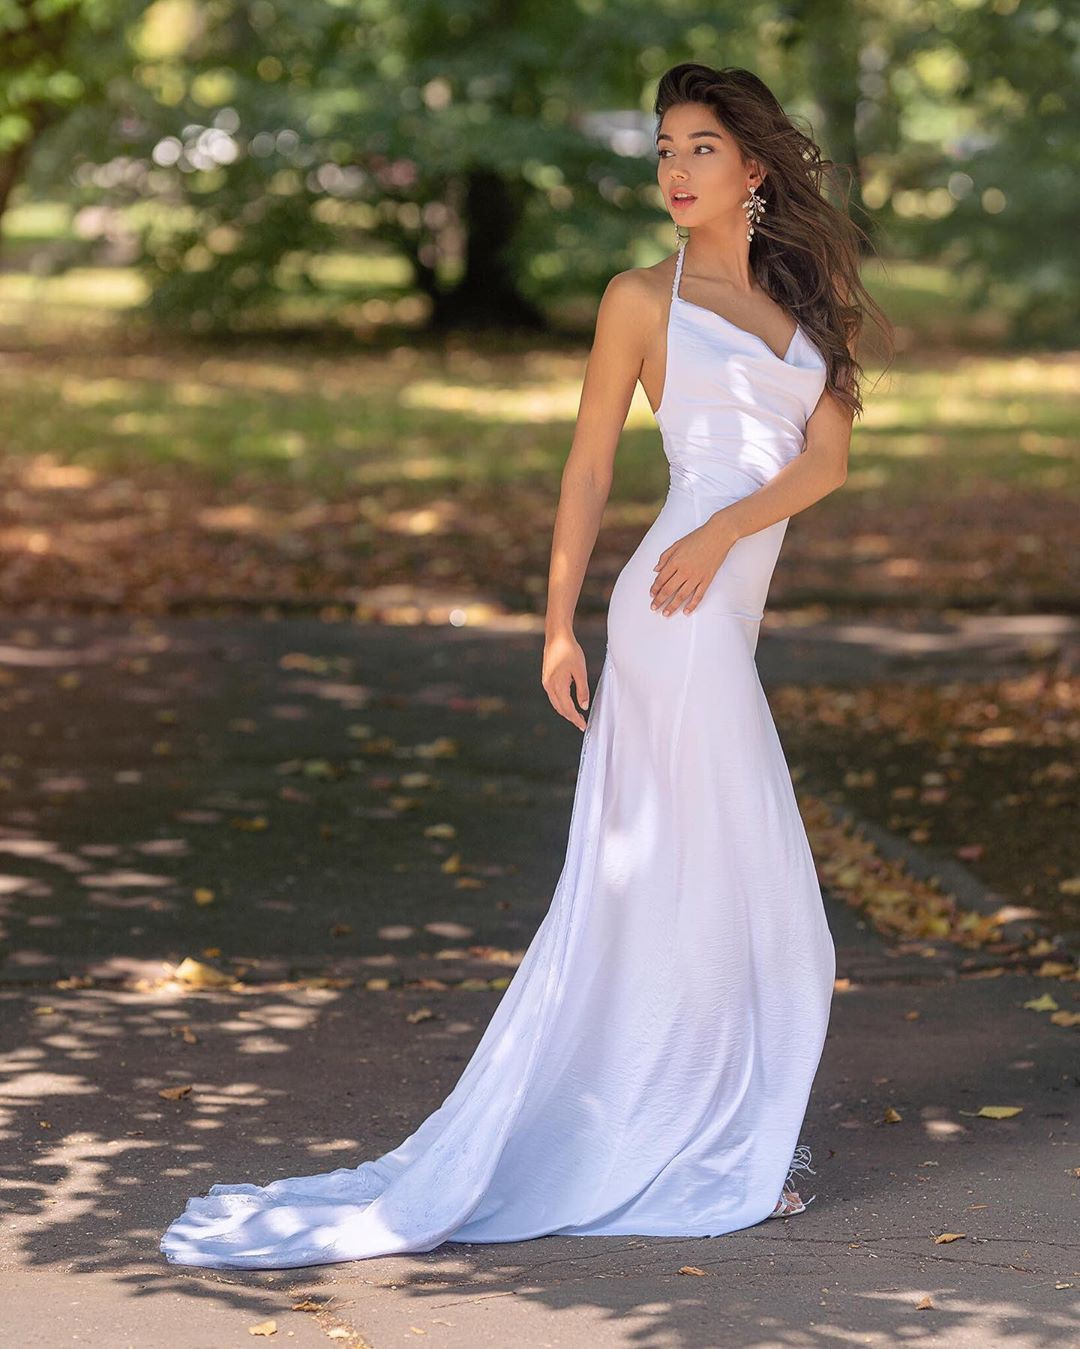 white outfit ideas with bridal clothing, wedding dress